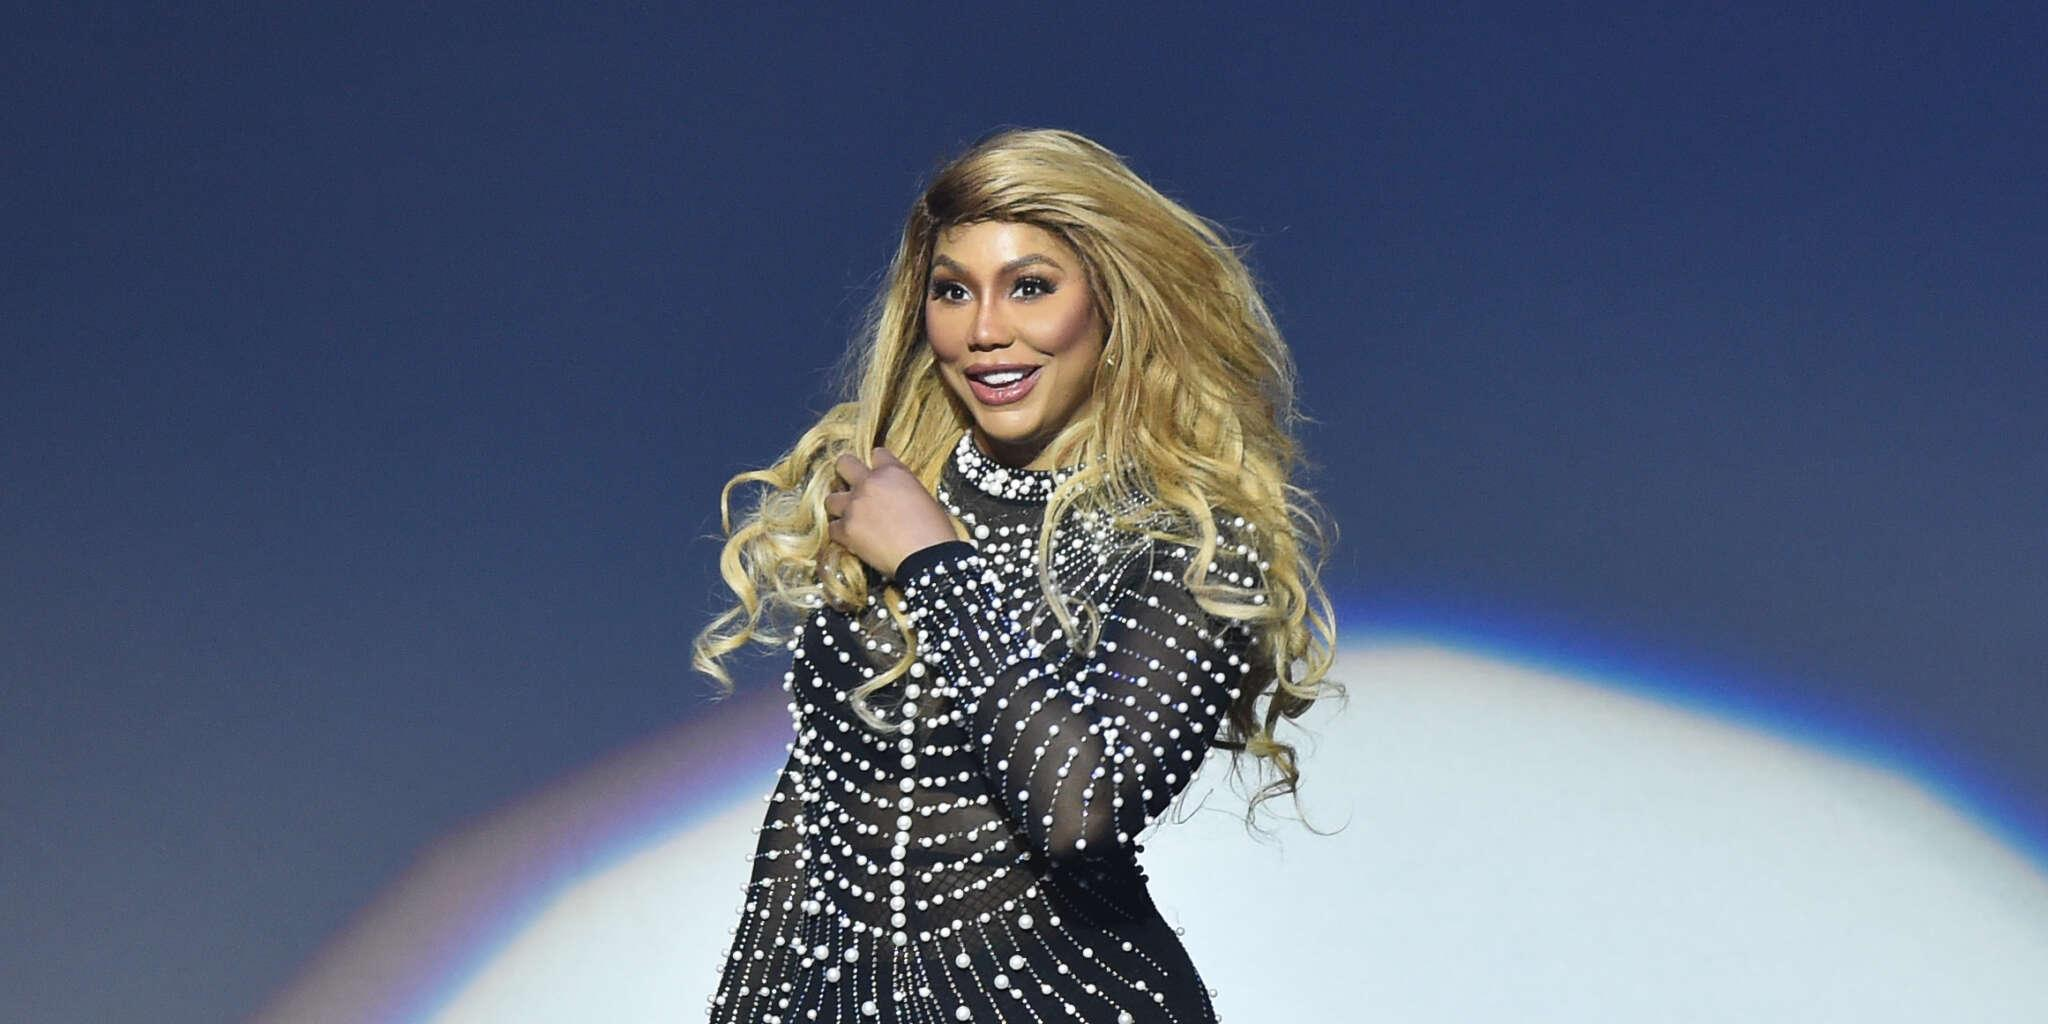 Tamar Braxton Is Finally On Cameo - Check Out The Clip That She Shared